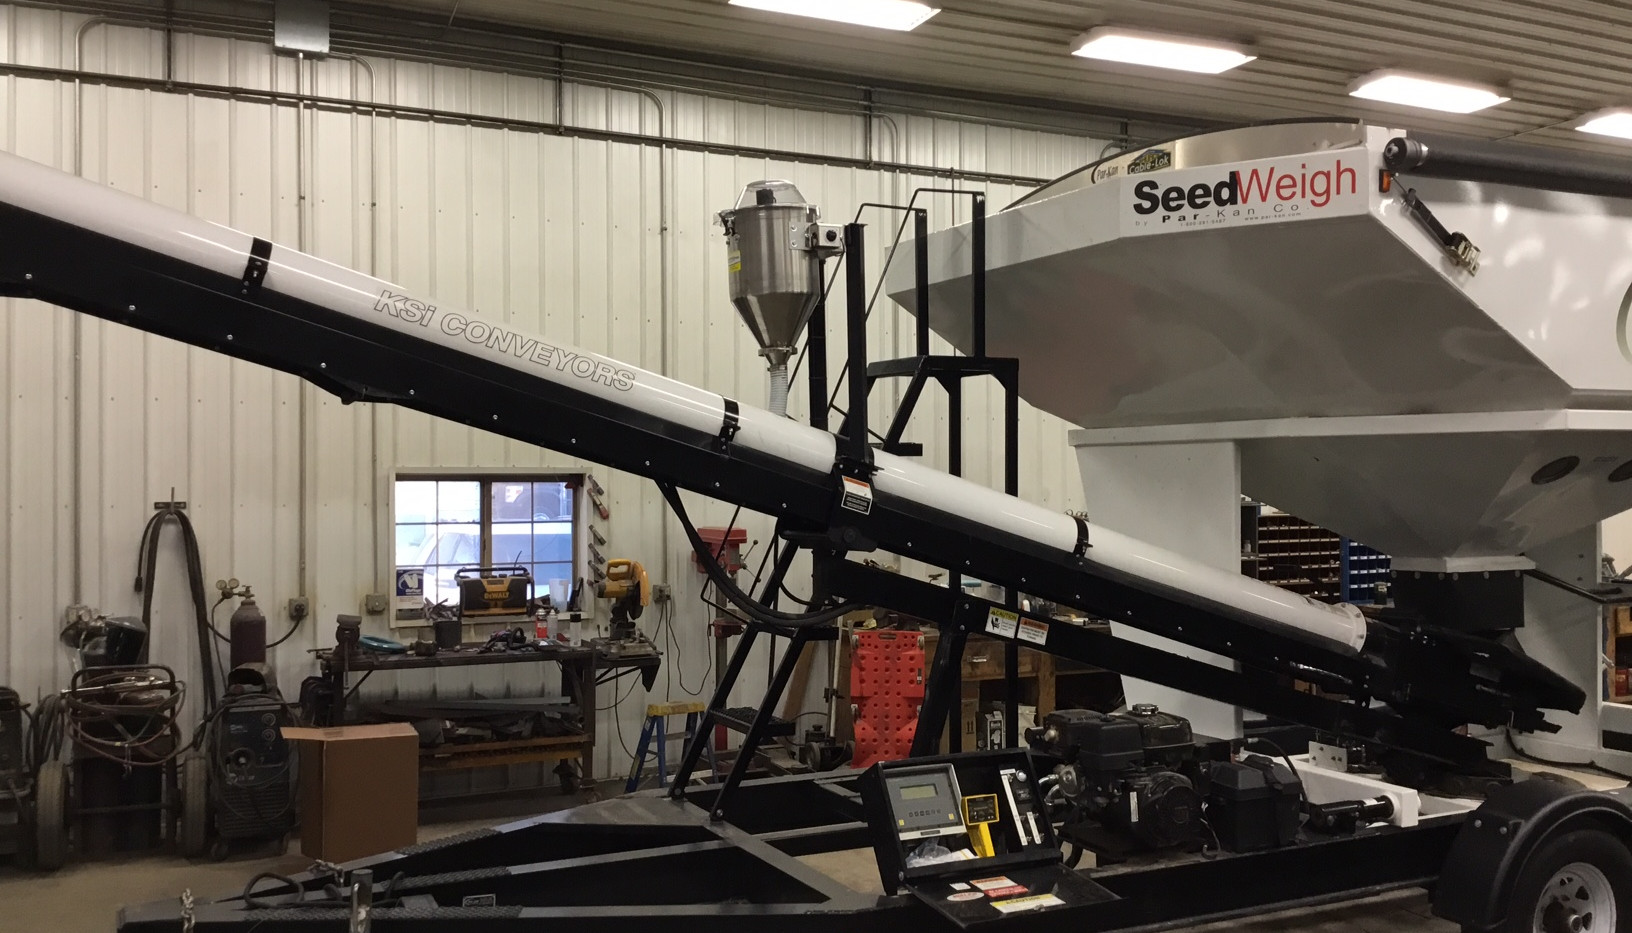 CT Standard Dry Applicator mounted on a Par-Kan Seed Weigh Tender.